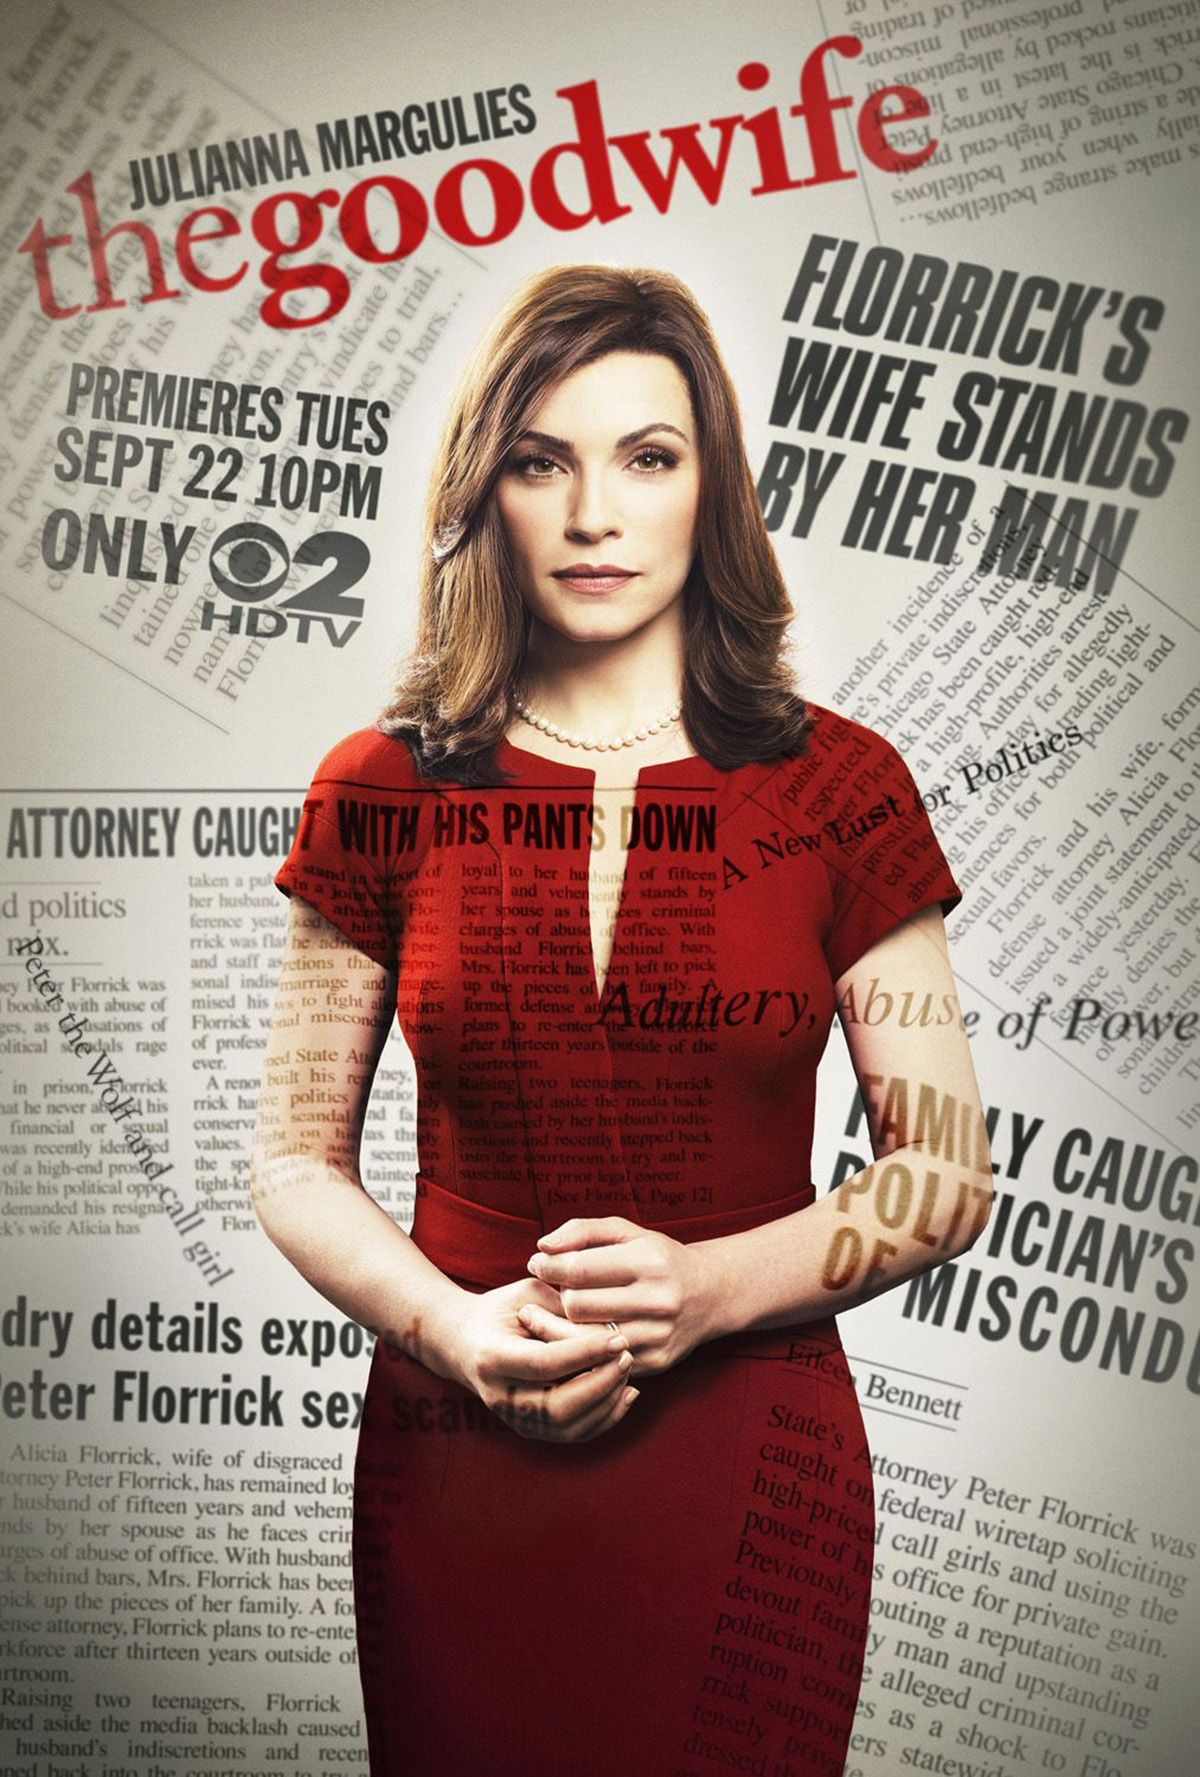 The Good Wife Tv Series Starring Julianna Margulies Good Wife Wife Movies Great Tv Shows